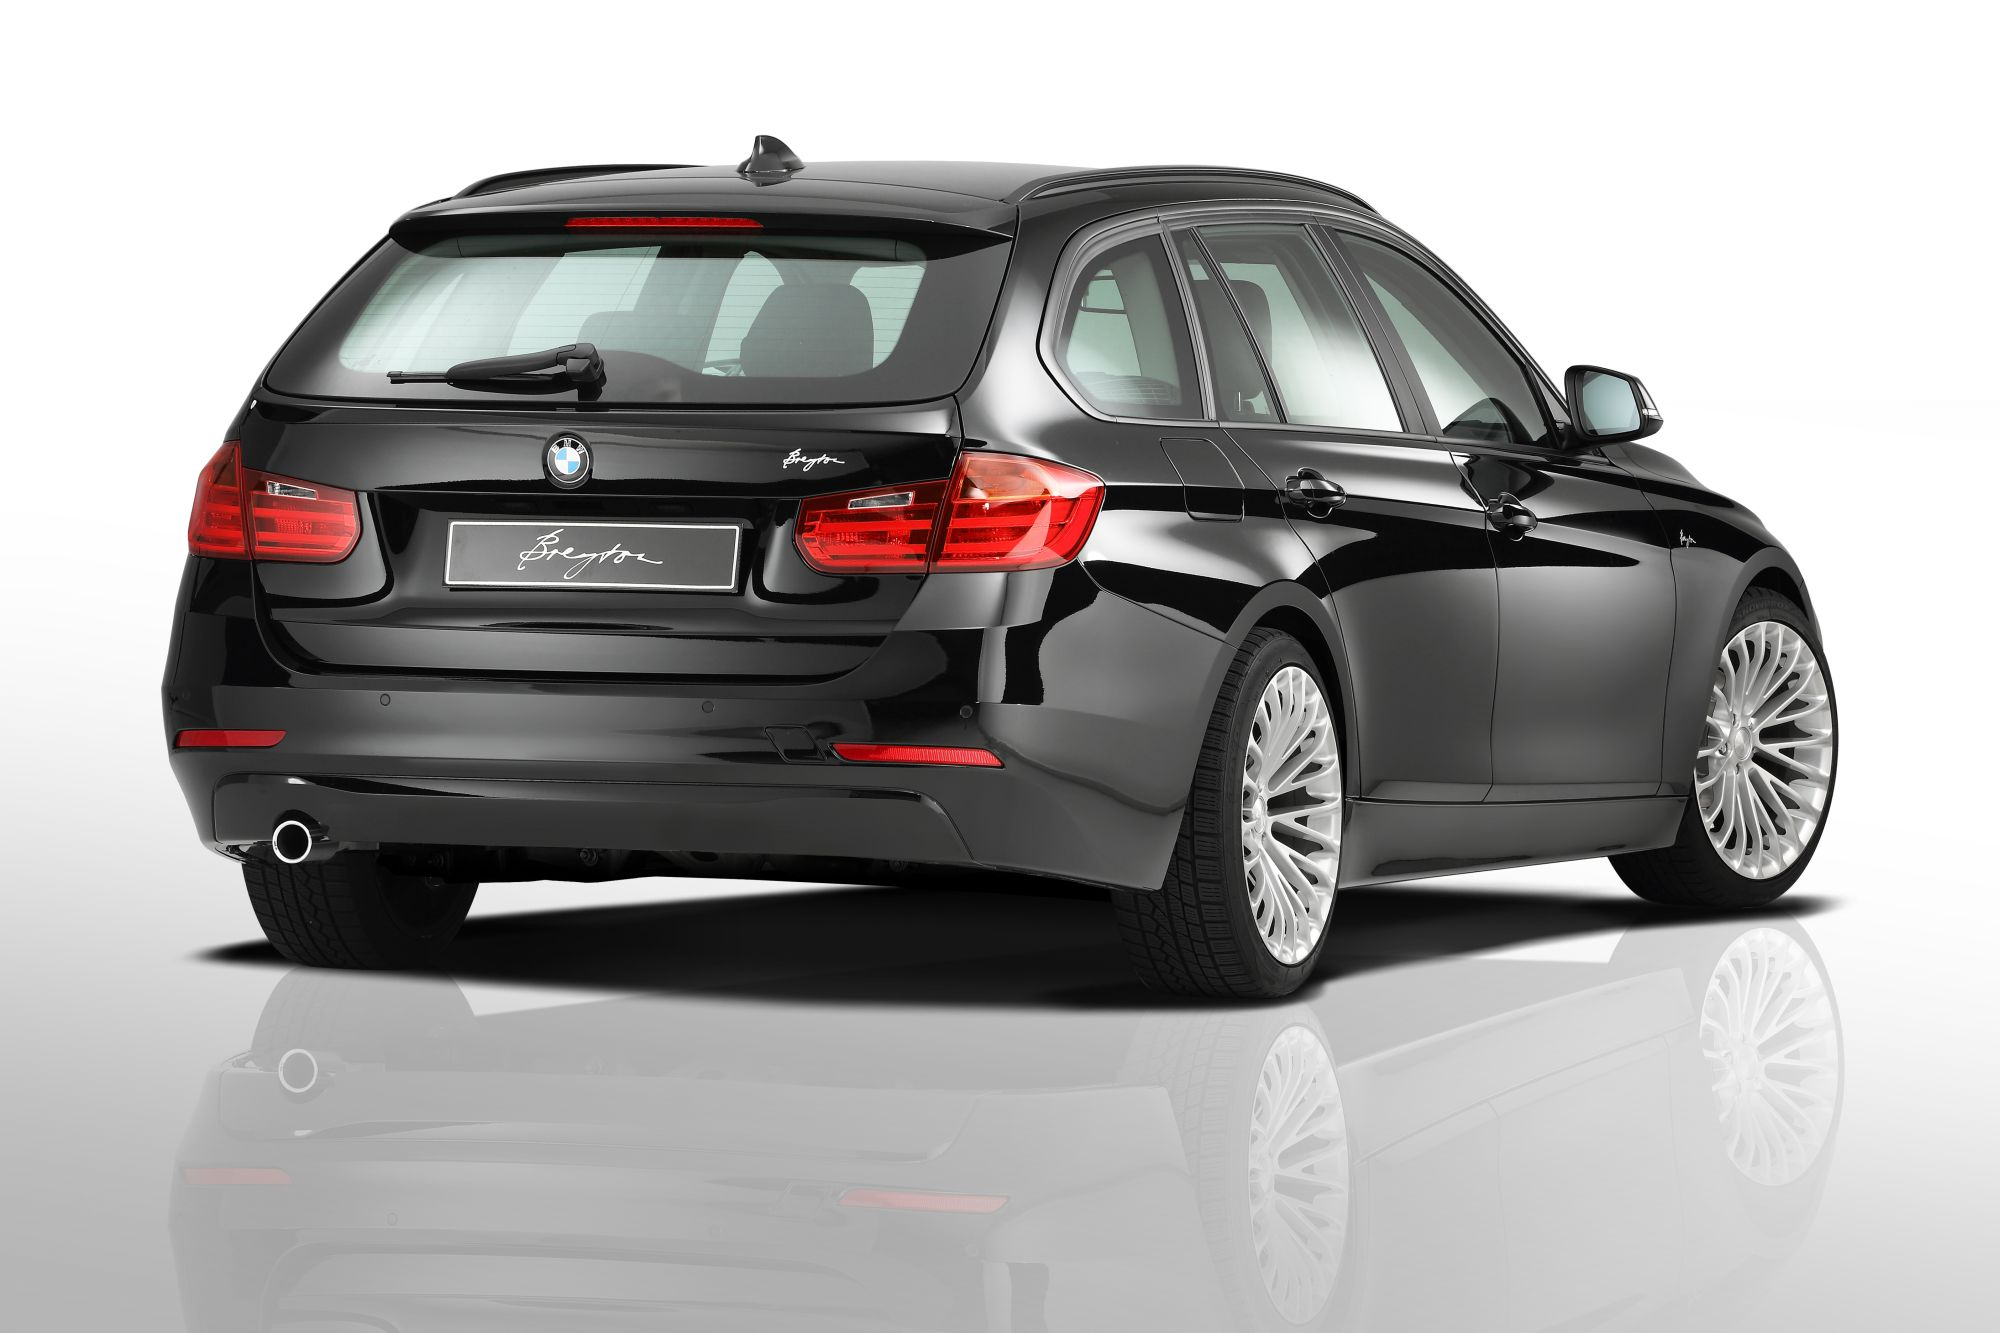 breyton race ls hyper silver 20 zoll bmw 5er f10 limousine. Black Bedroom Furniture Sets. Home Design Ideas